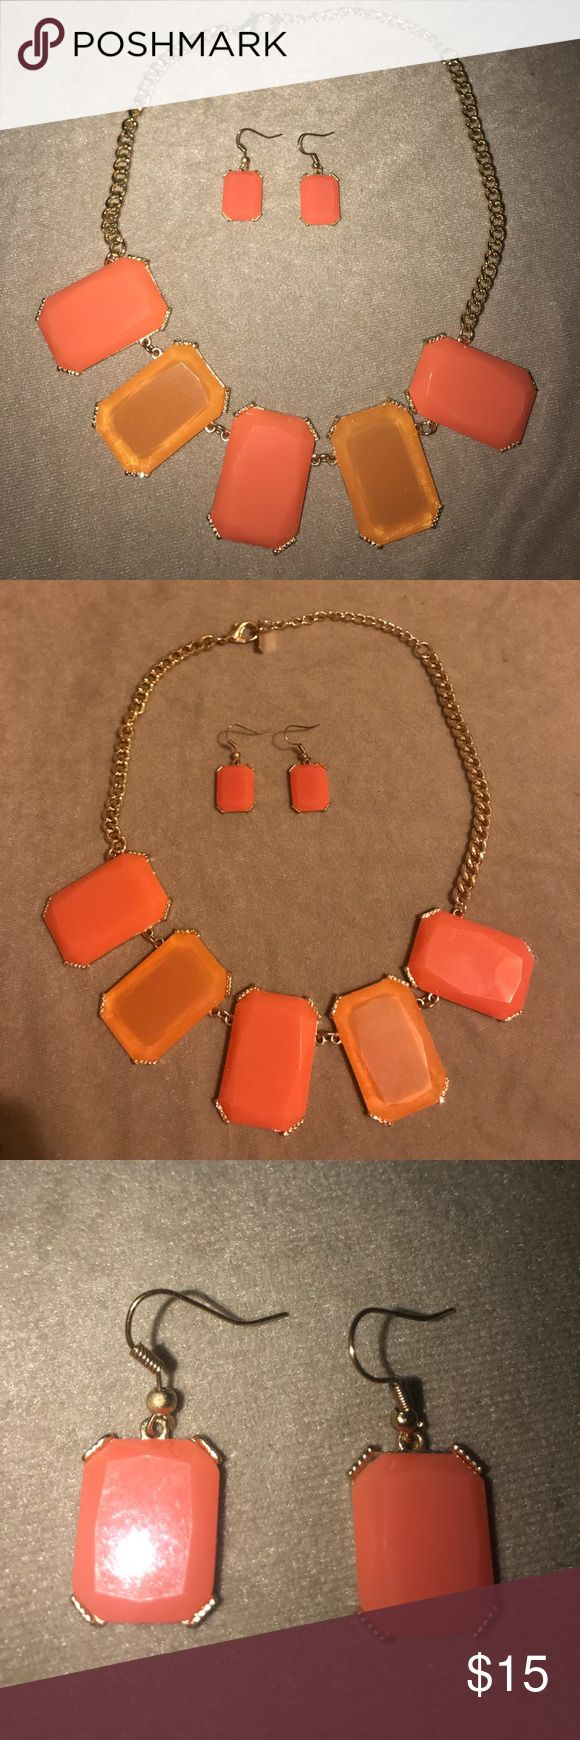 Orange and Coral Statement Necklace and Earrings Beautiful orange and coral statement necklace with gold chain and coral matching earrings. Worn once, great condition. Jewelry Necklaces